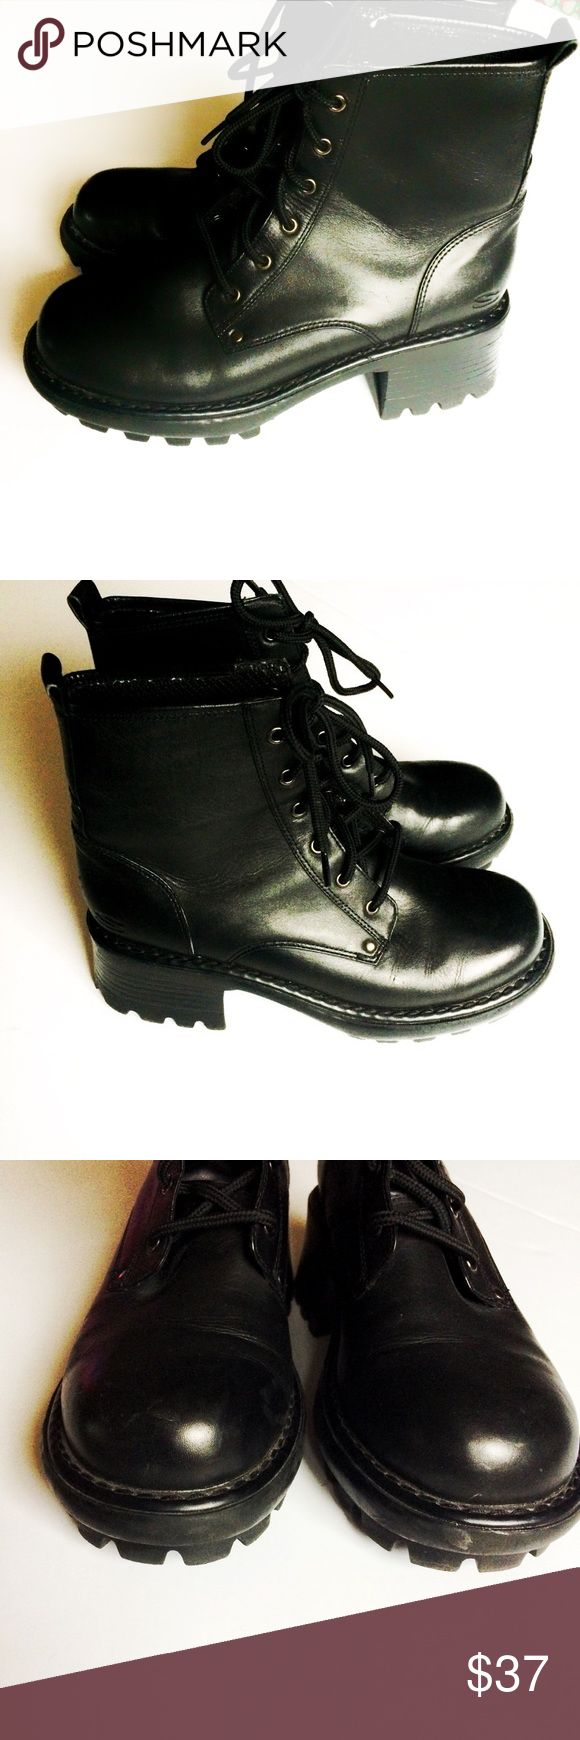 Skechers black leather lace-up heavy combat boots Make an offer! No trades. Bundle and save - I'm a fast shipper! Skechers Shoes Lace Up Boots